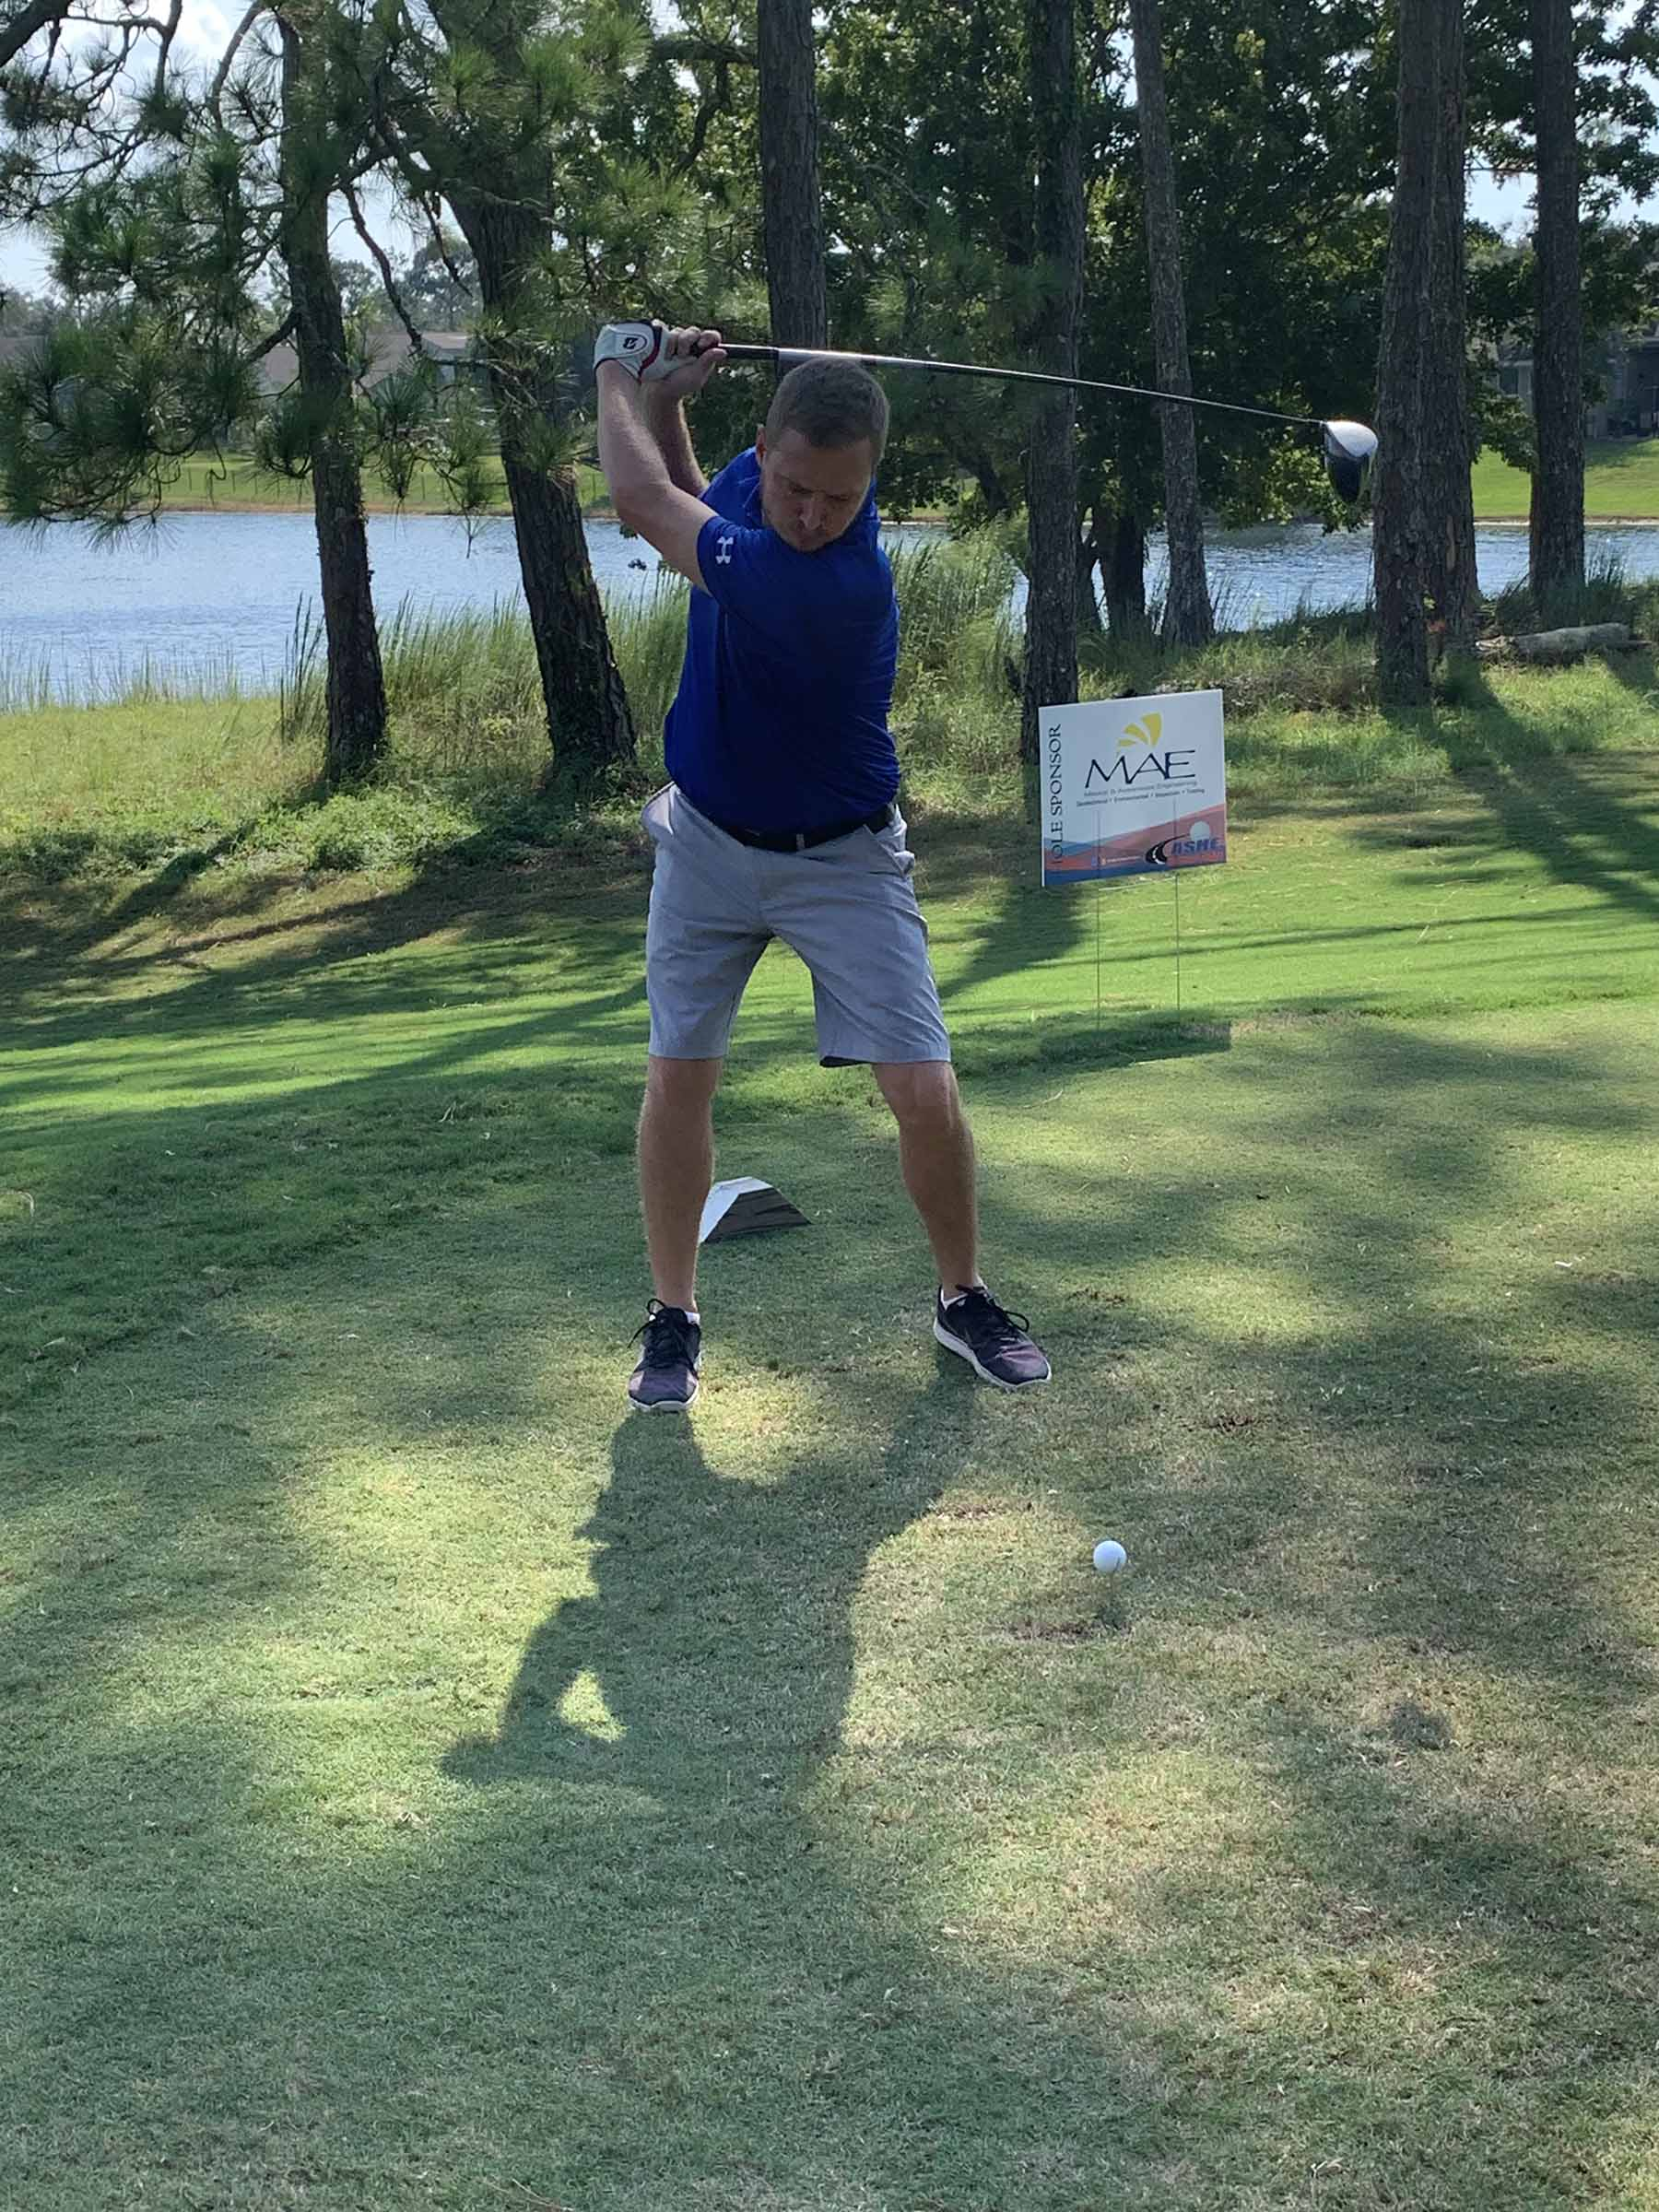 A team member mid-swing on a golf course.